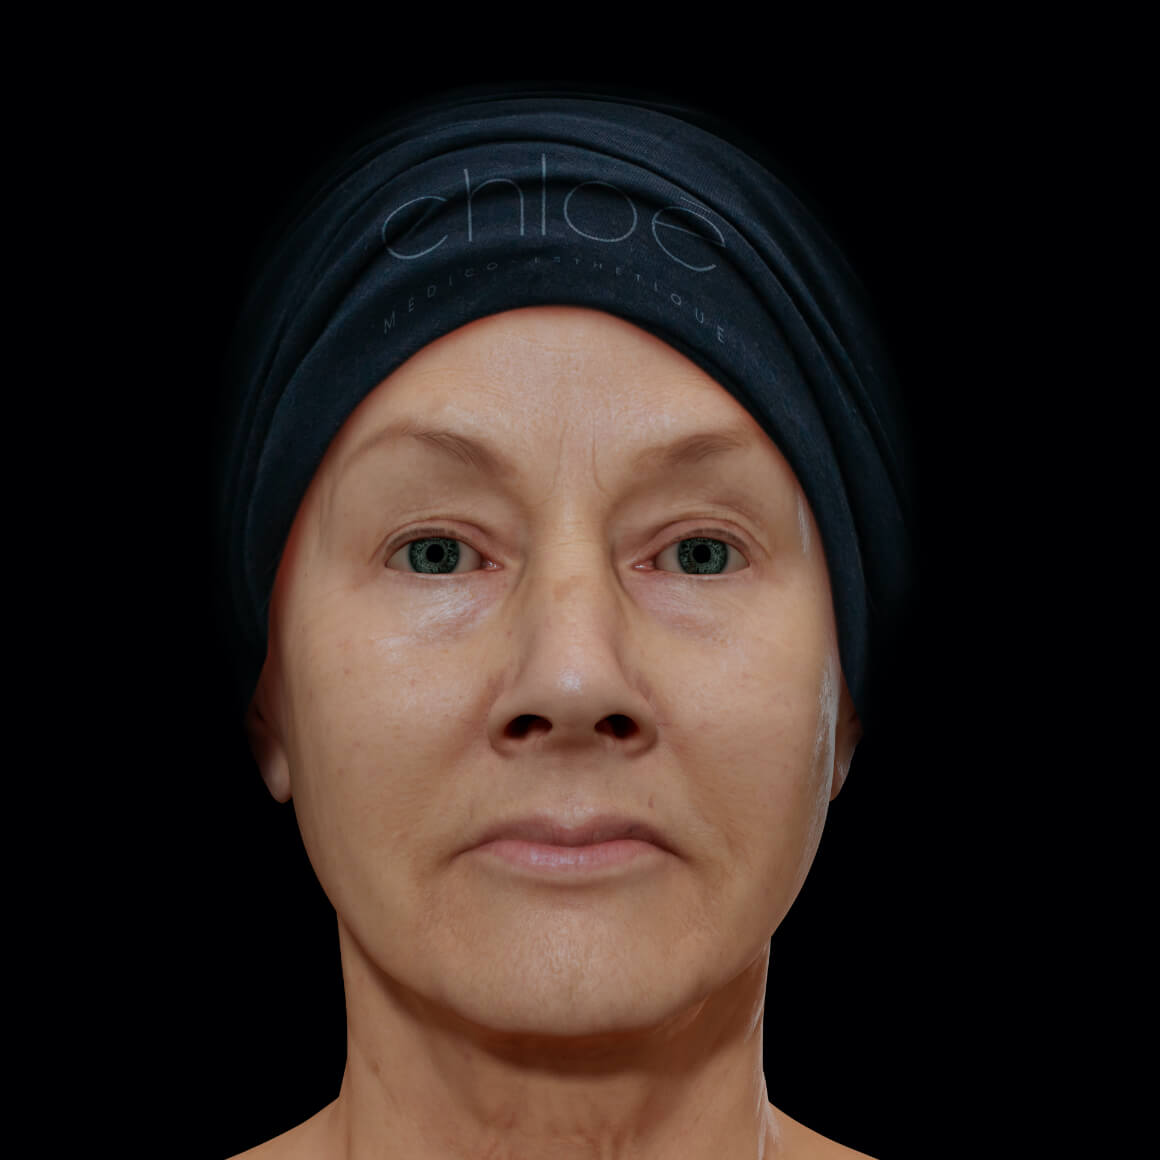 Clinique Chloé female patient facing front after Smoothliftin laser treatments for facial skin tightening